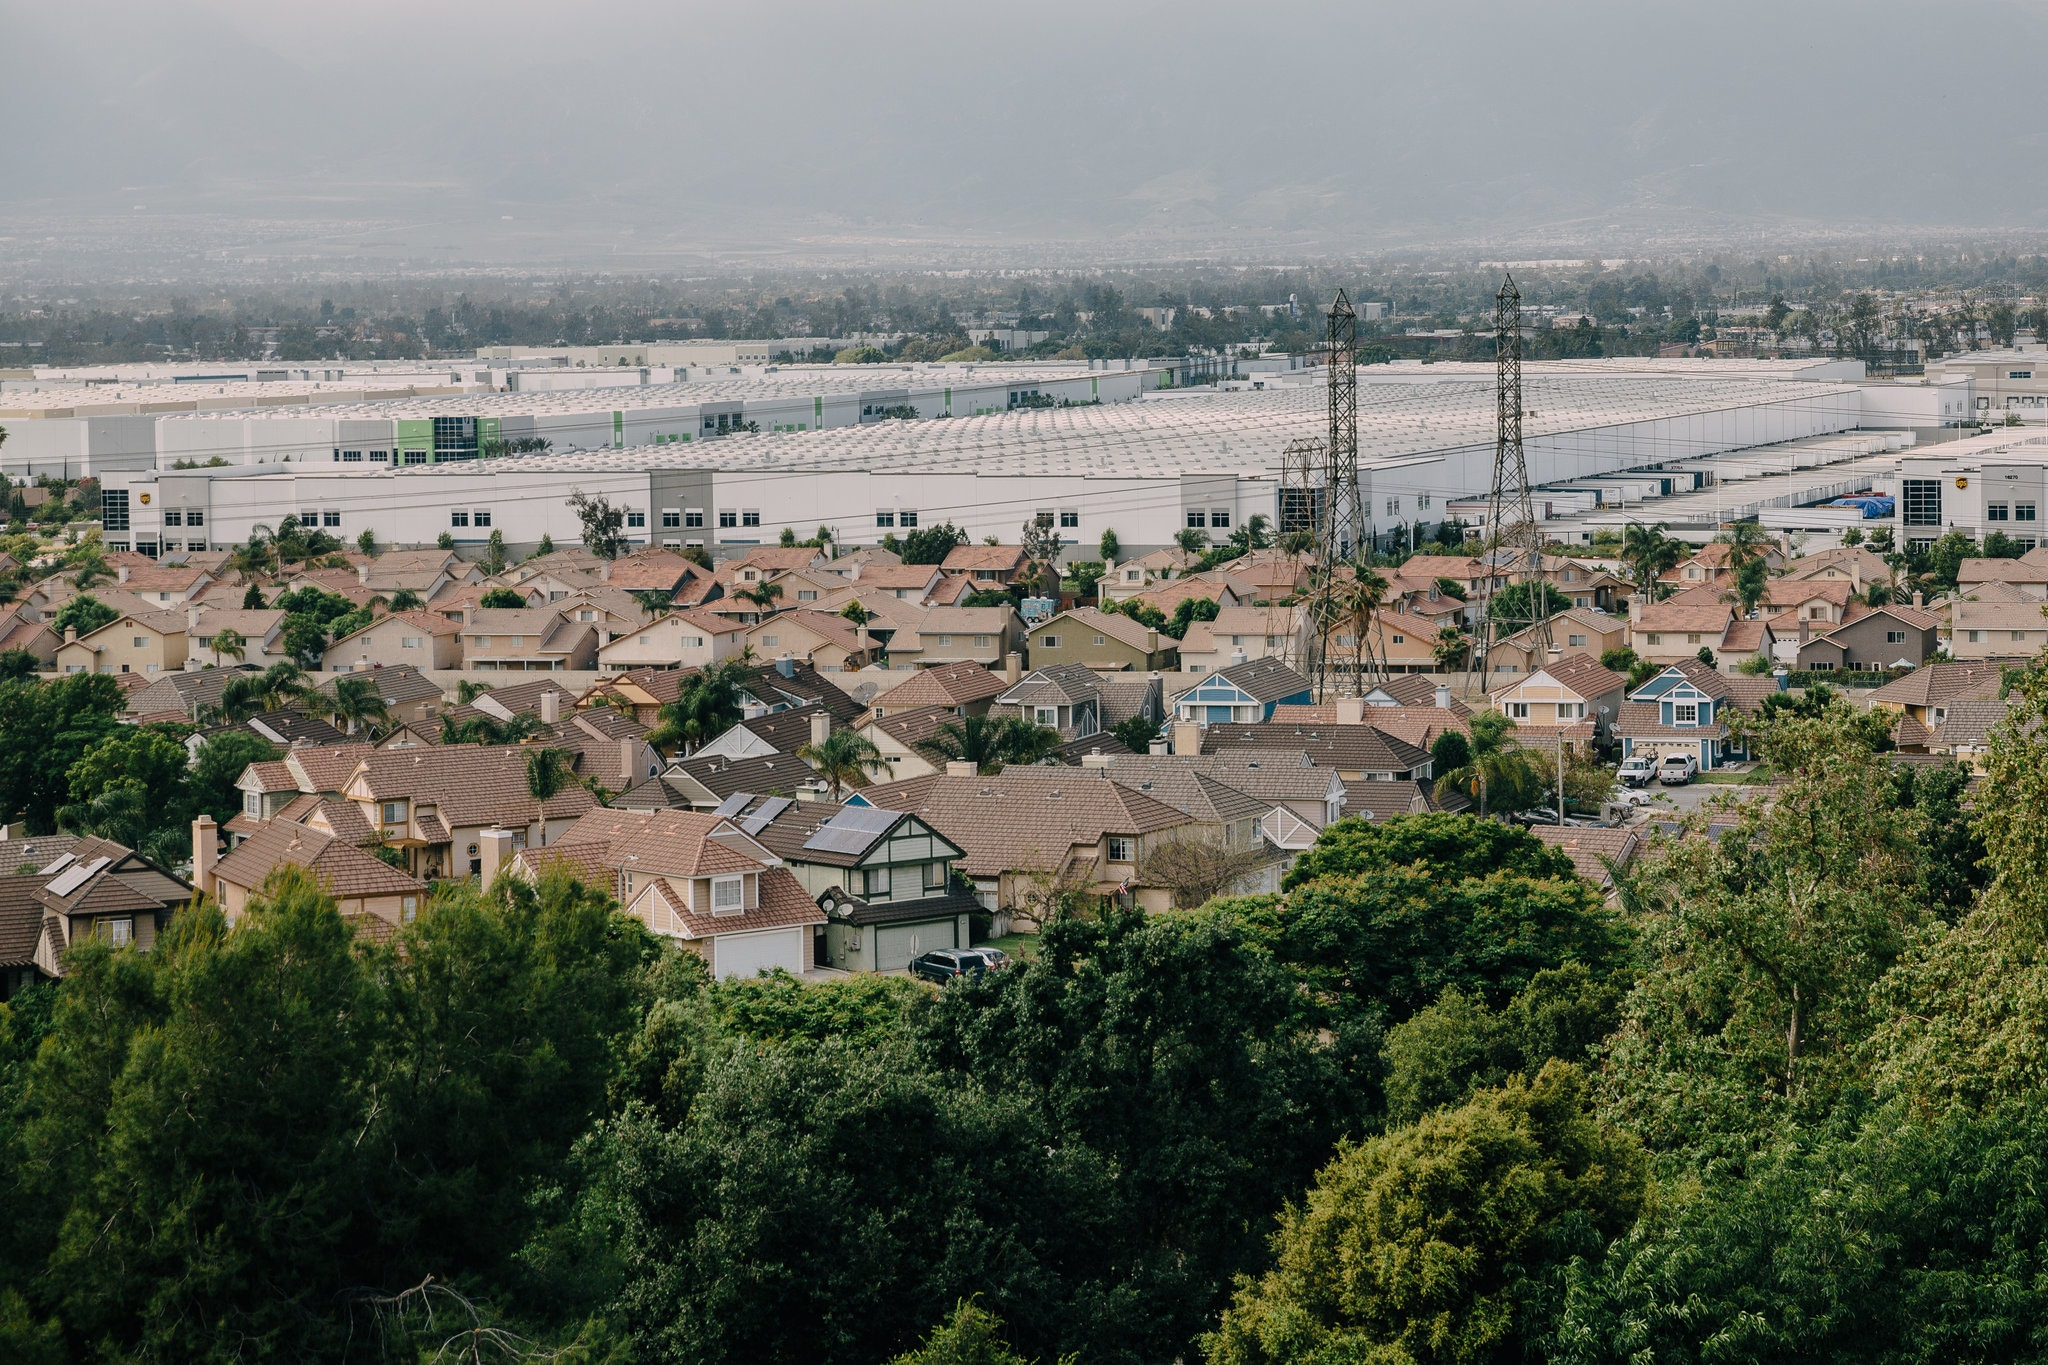 Inland Boom and Bust: Race, Place, and the Lasting Consequences of the Southern California Housing Bubble